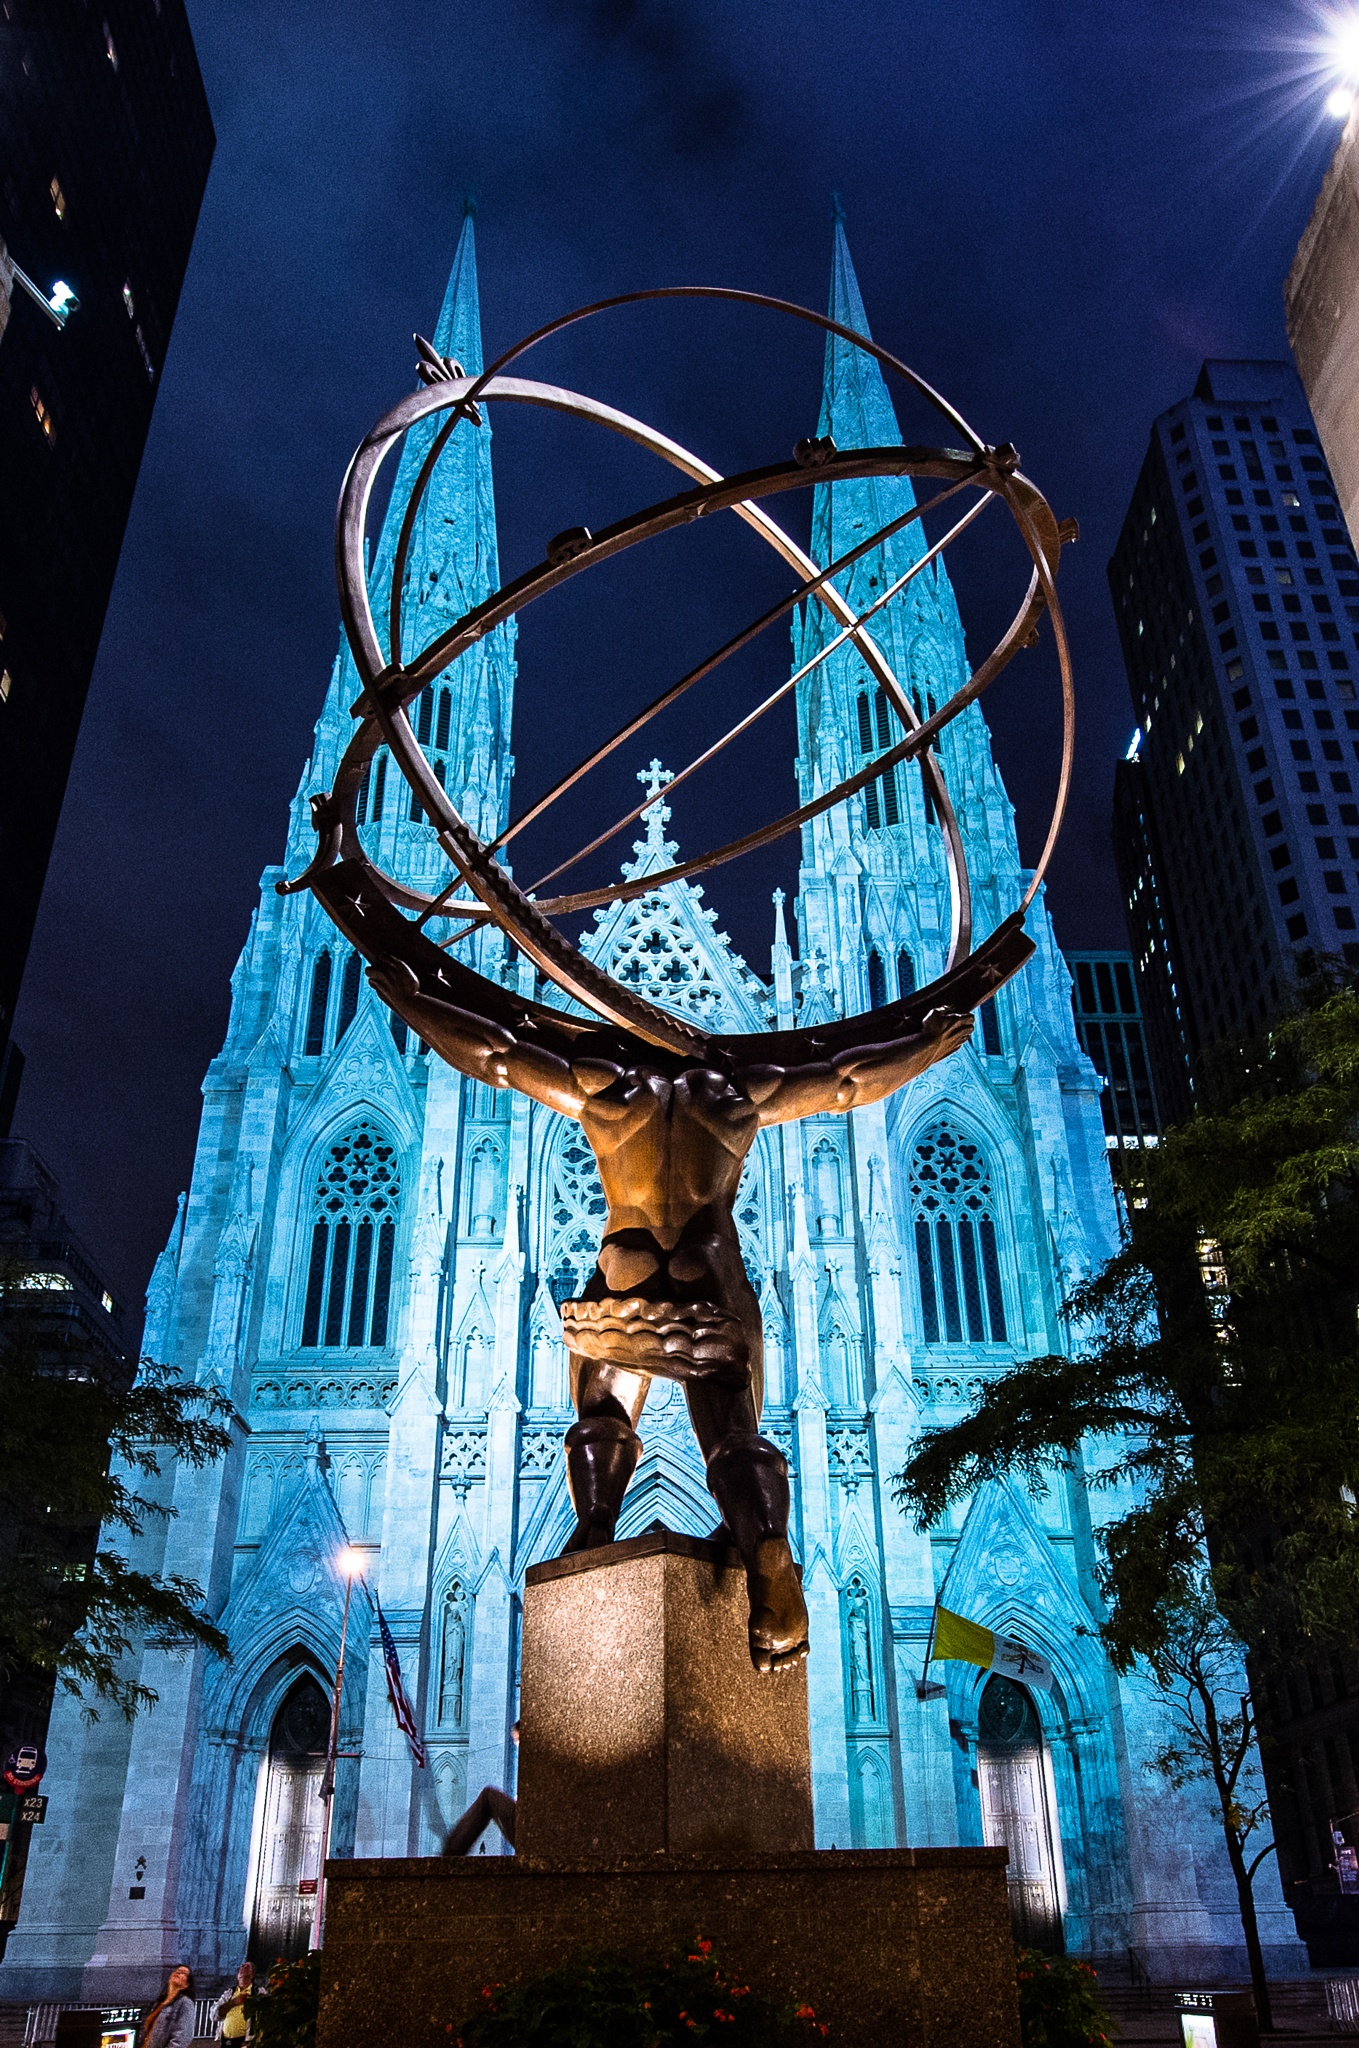 Rockefeller plaza / St. Patrick's Cathedral in New York City! by Danny Pham